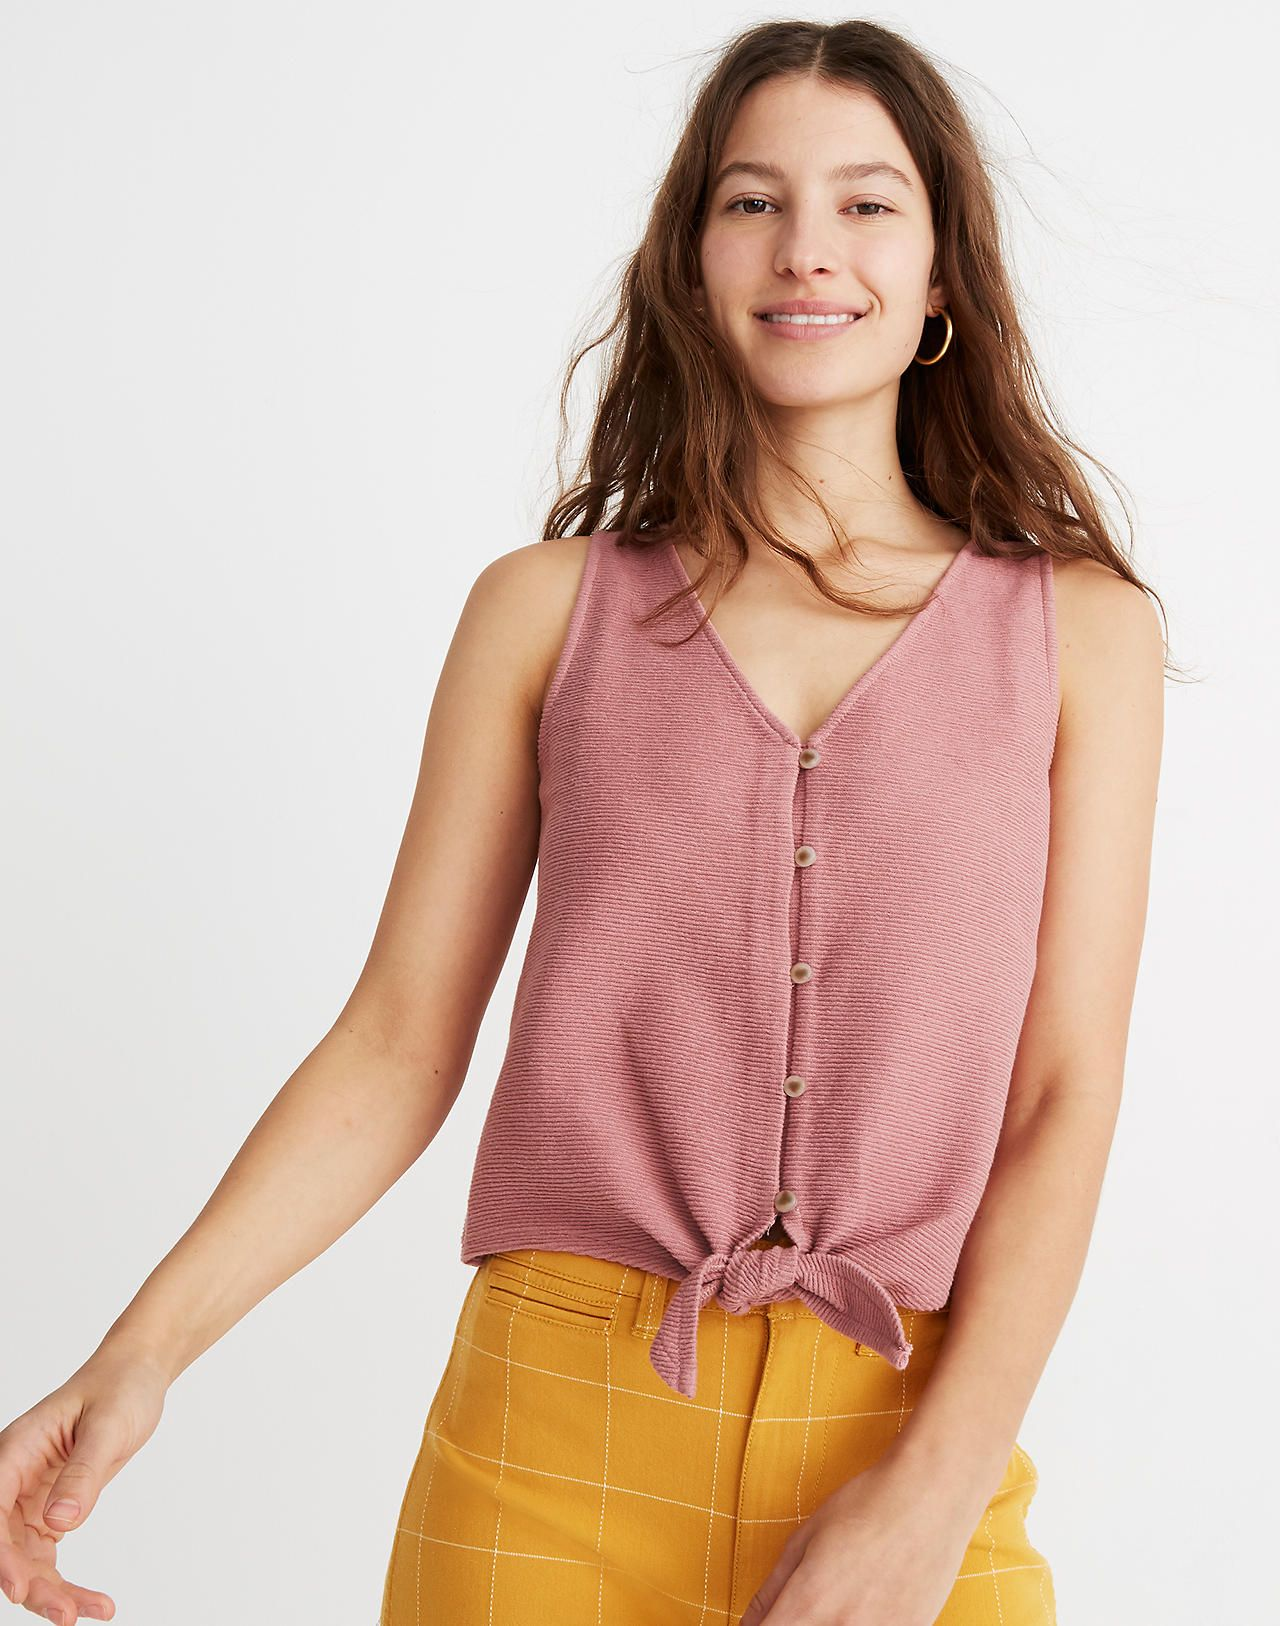 cb256e01696 Texture & Thread Button-Front Tie Tank Top in hthr bloom image 1 ...